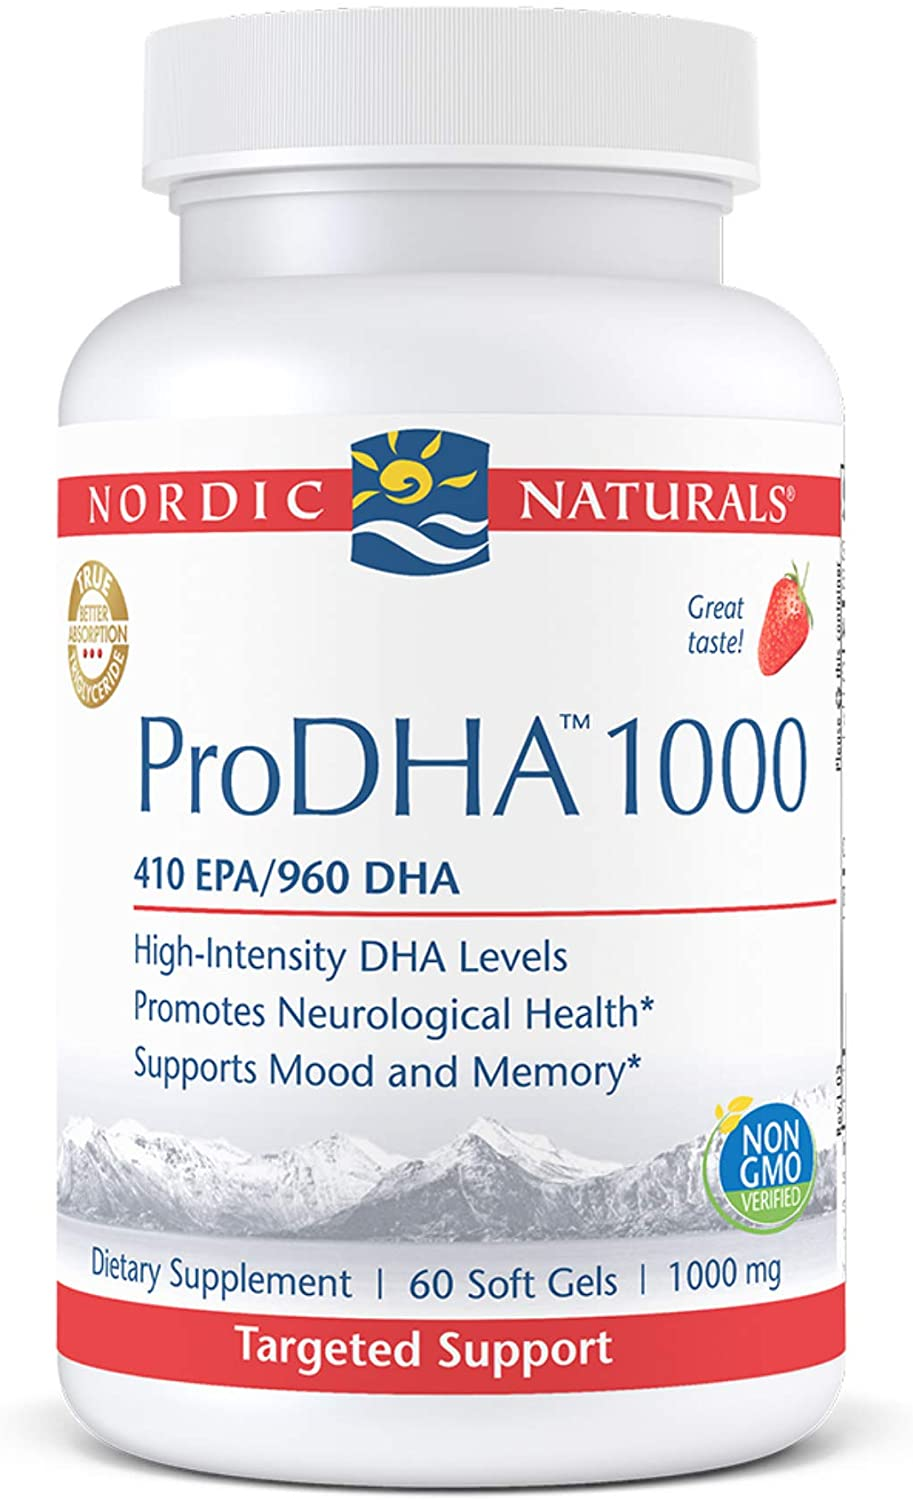 Nordic Naturals ProDHA 1000, Strawberry - 60 Soft Gels - 1660 mg Omega-3 - High-Intensity DHA Formula for Neurological Health, Mood & Memory - Non-GMO - 30 Servings